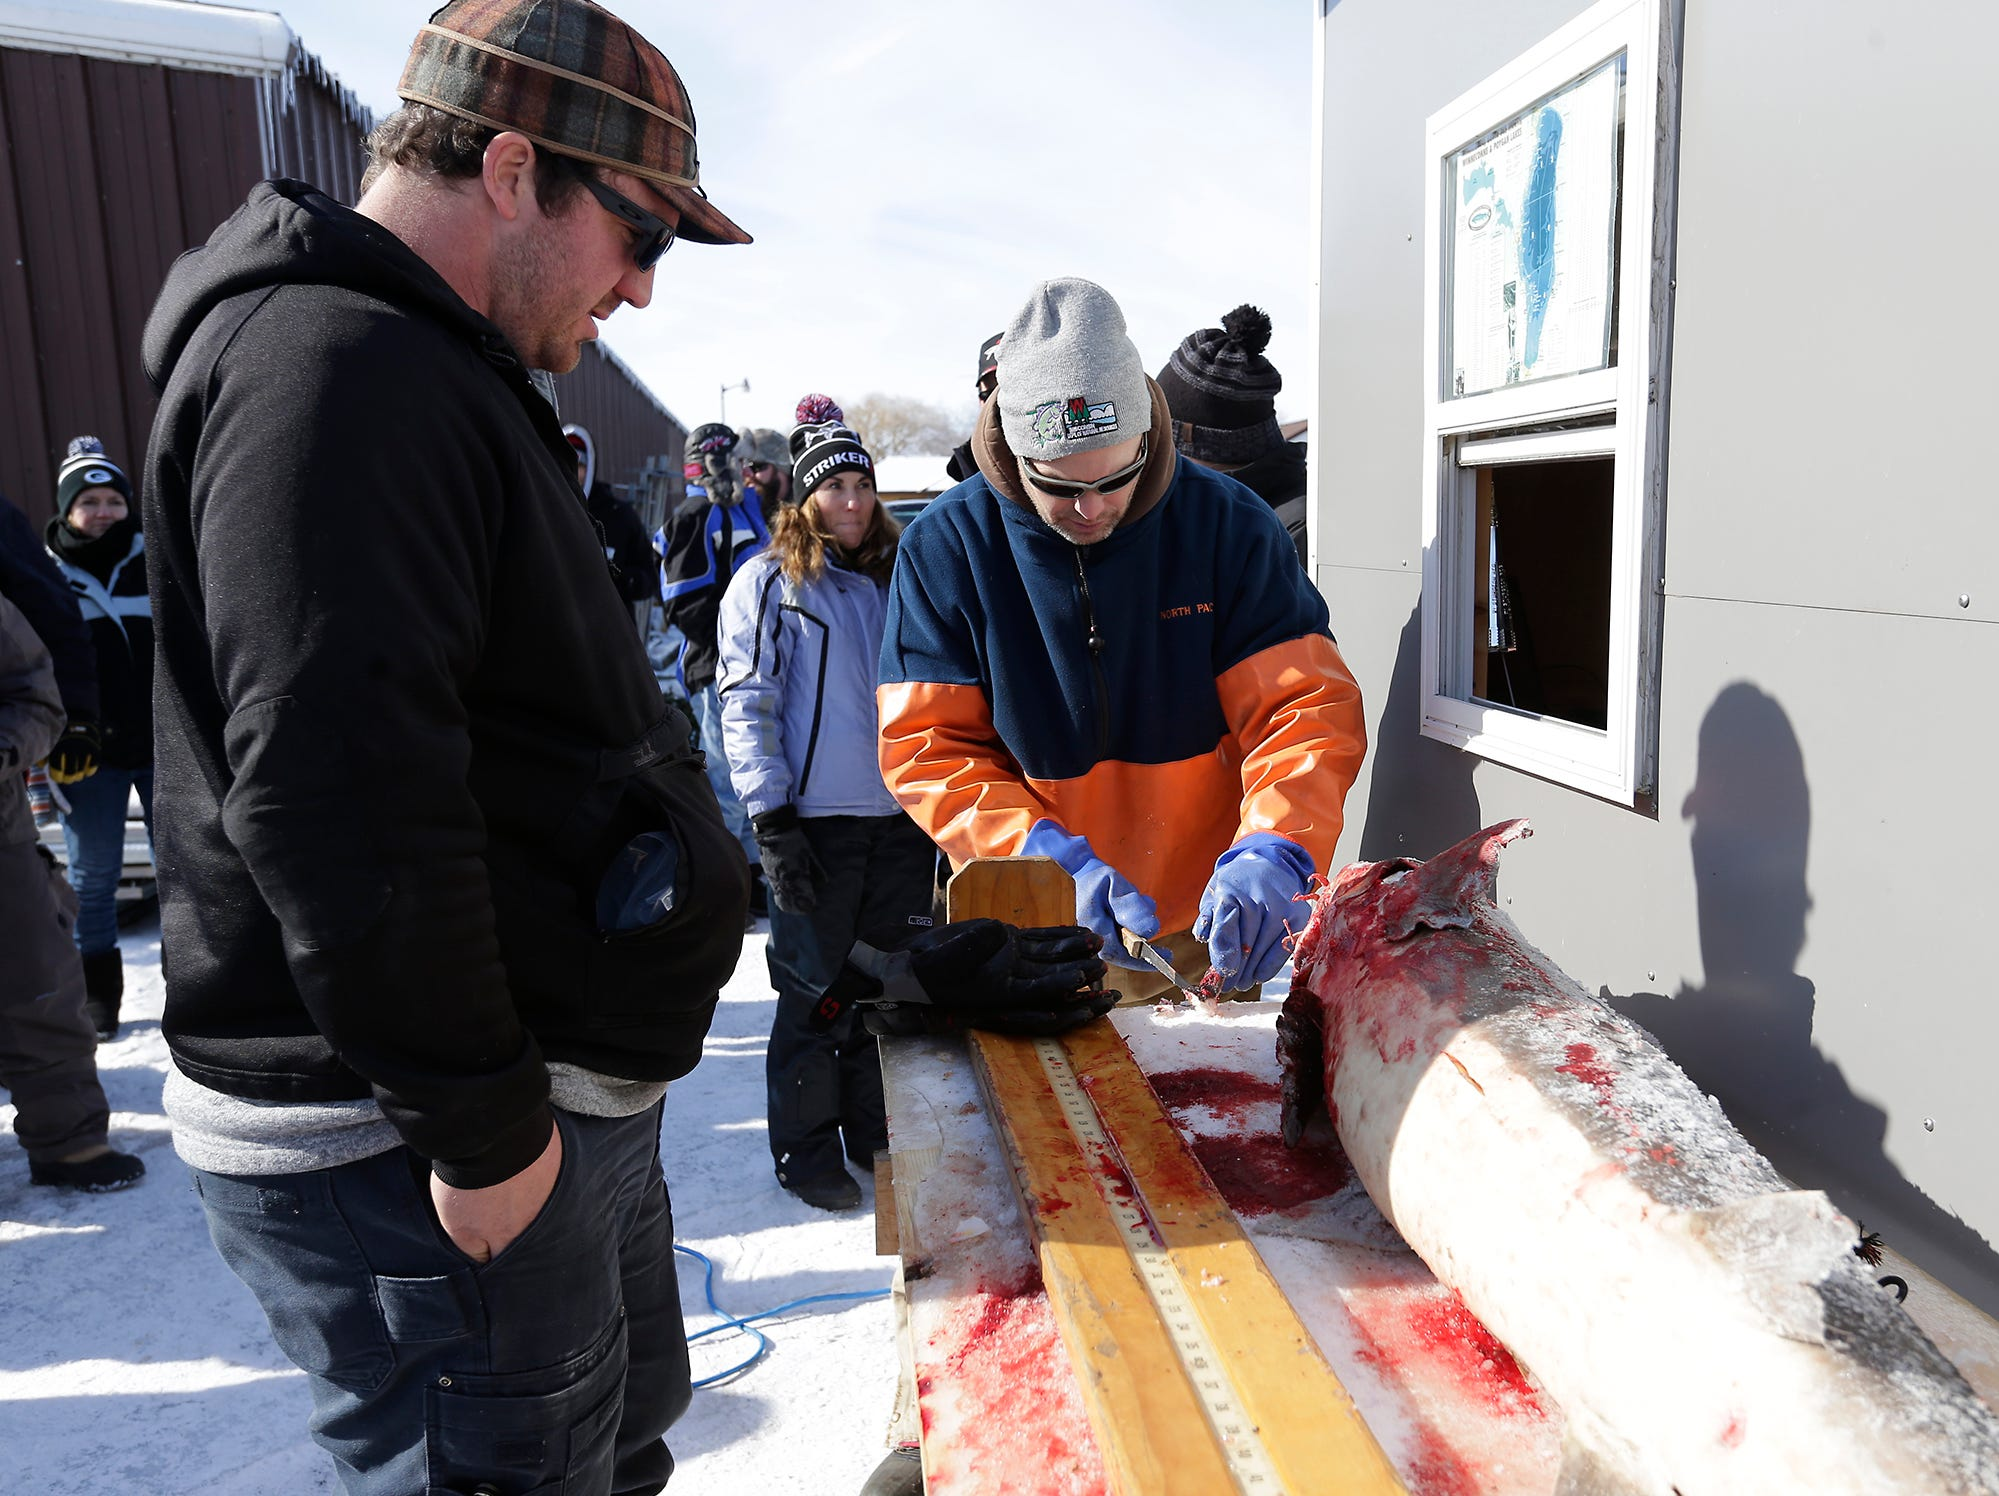 Wisconsin DNR representative Scott Bunde (right) works on a 68 pound sturgeon speared by Josh Cauley (left) of Kaukauna Saturday, February 9, 2019 at Wendt's on the Lake between Fond du Lac and Oshkosh. Sturgeon spearing season runs from February 9, 2019 through February 24, 2019 on Lake Winnebago or until any